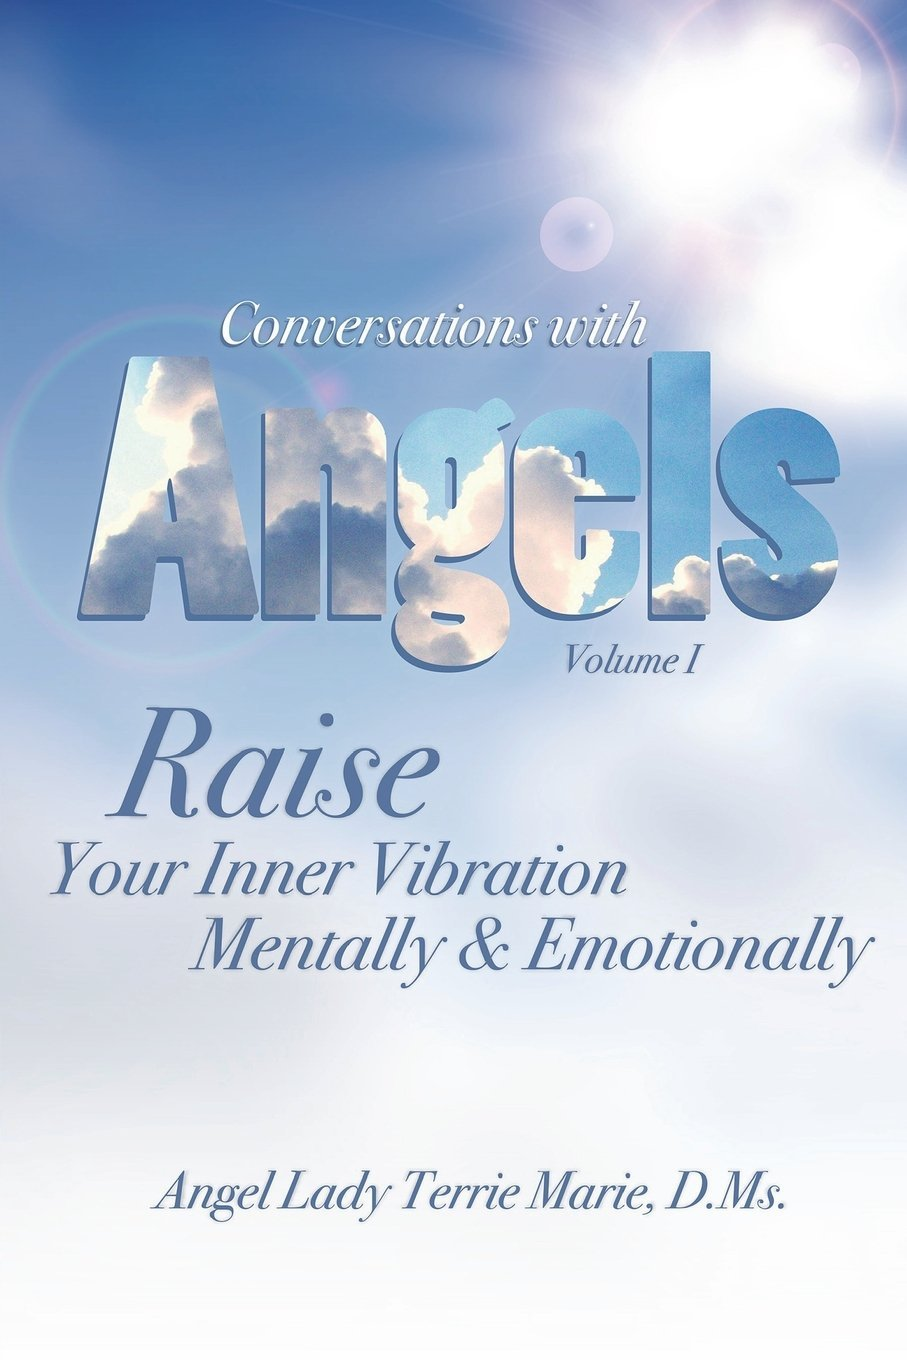 Conversations with Angels: Raise your Inner Vibration Mentally and Emotionally pdf